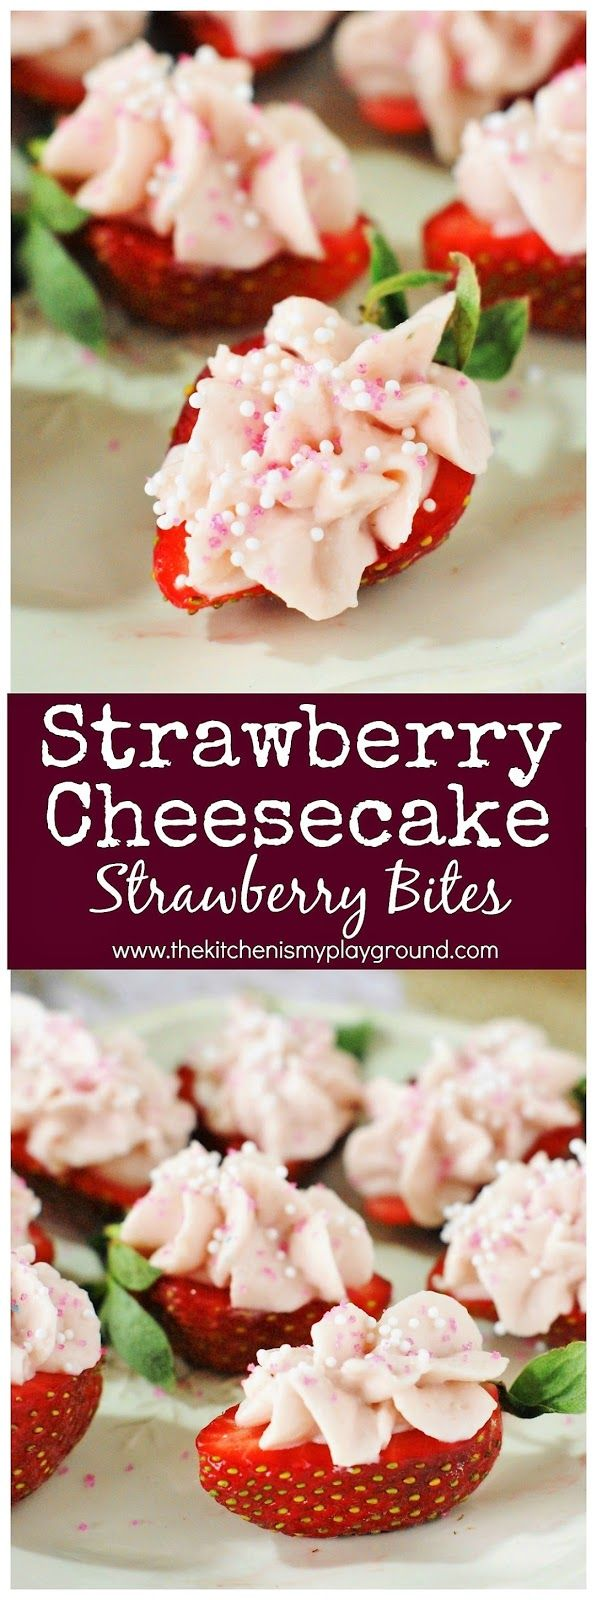 Easy Strawberry Cheesecake Bites Image